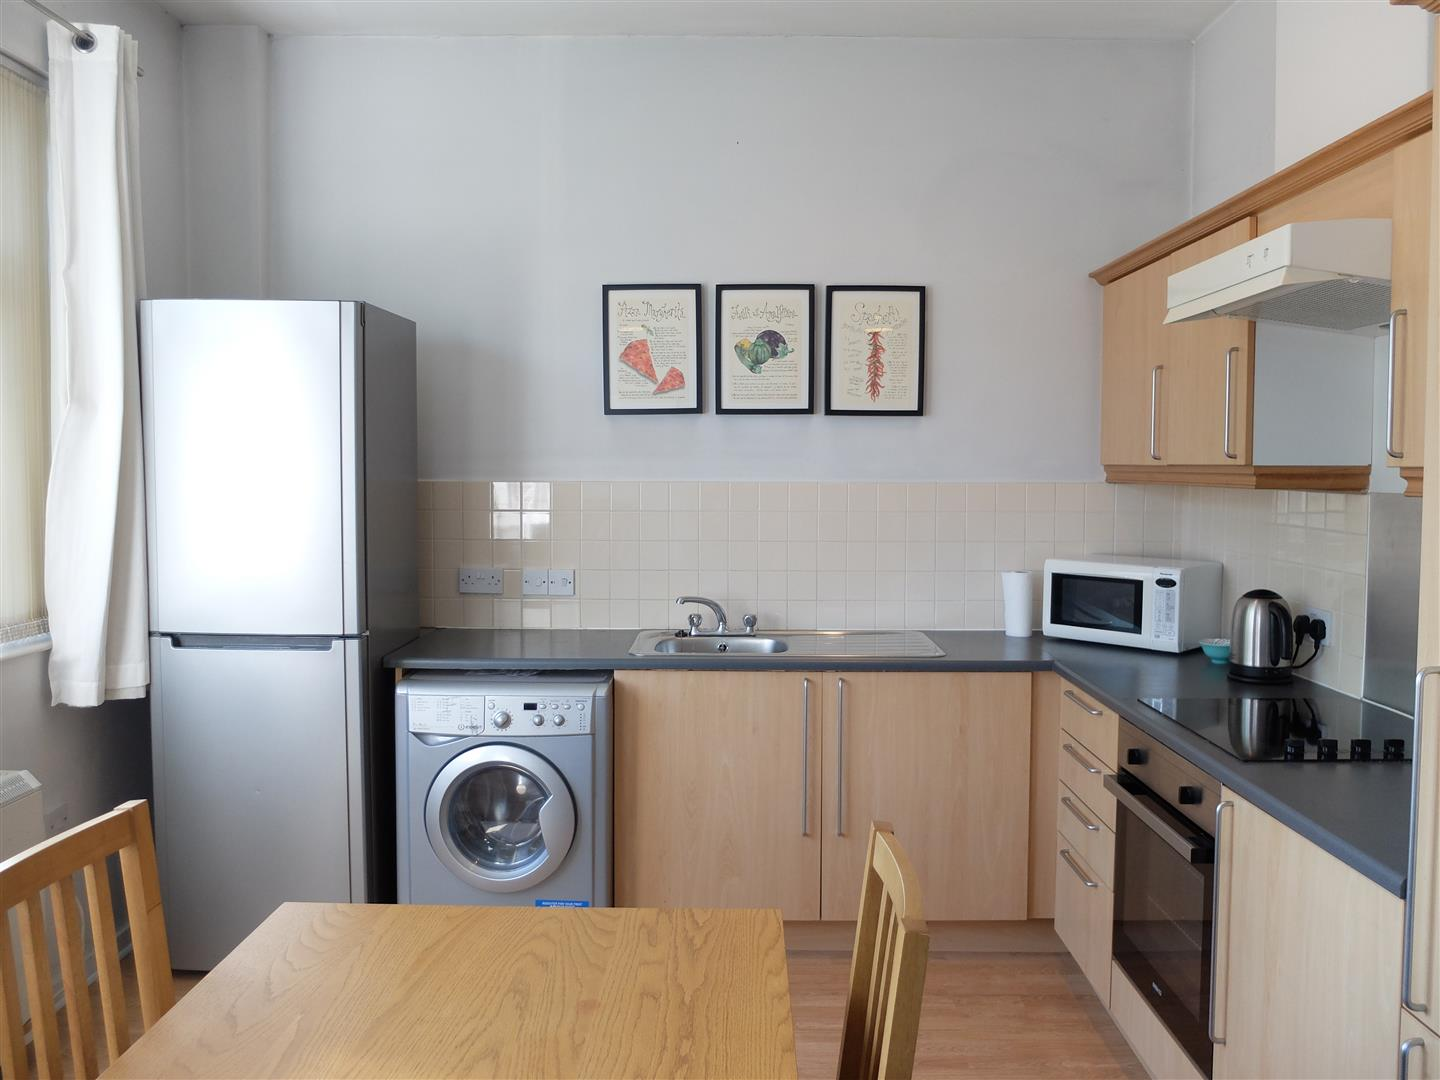 Flat 16 Willowbank Carlisle 2 Bedrooms Flat On Sale